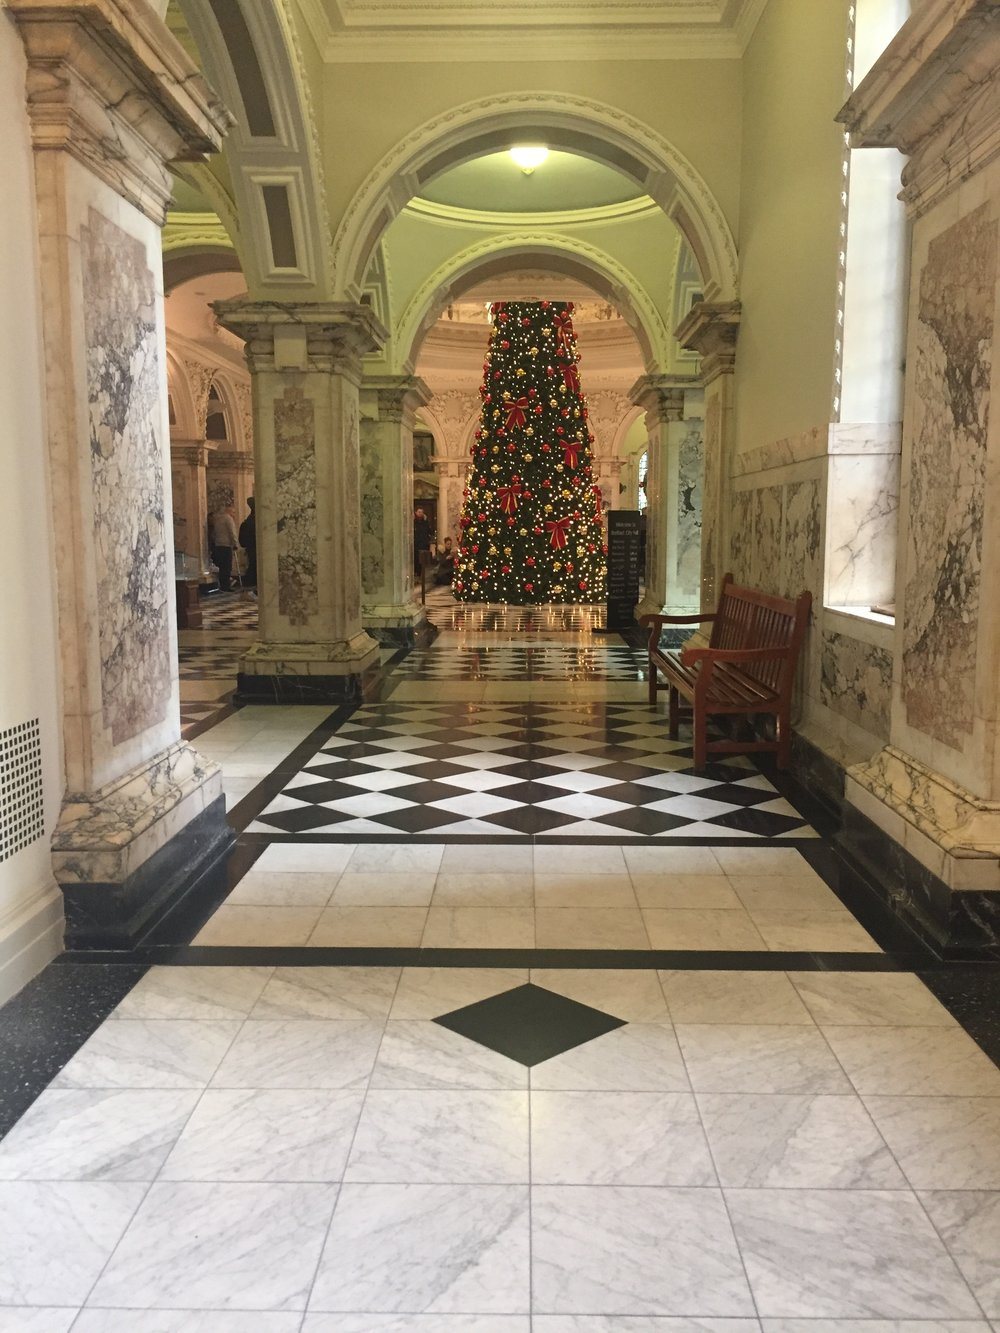 Rare person free pic of the Christmas Tree at Belfast City Hall